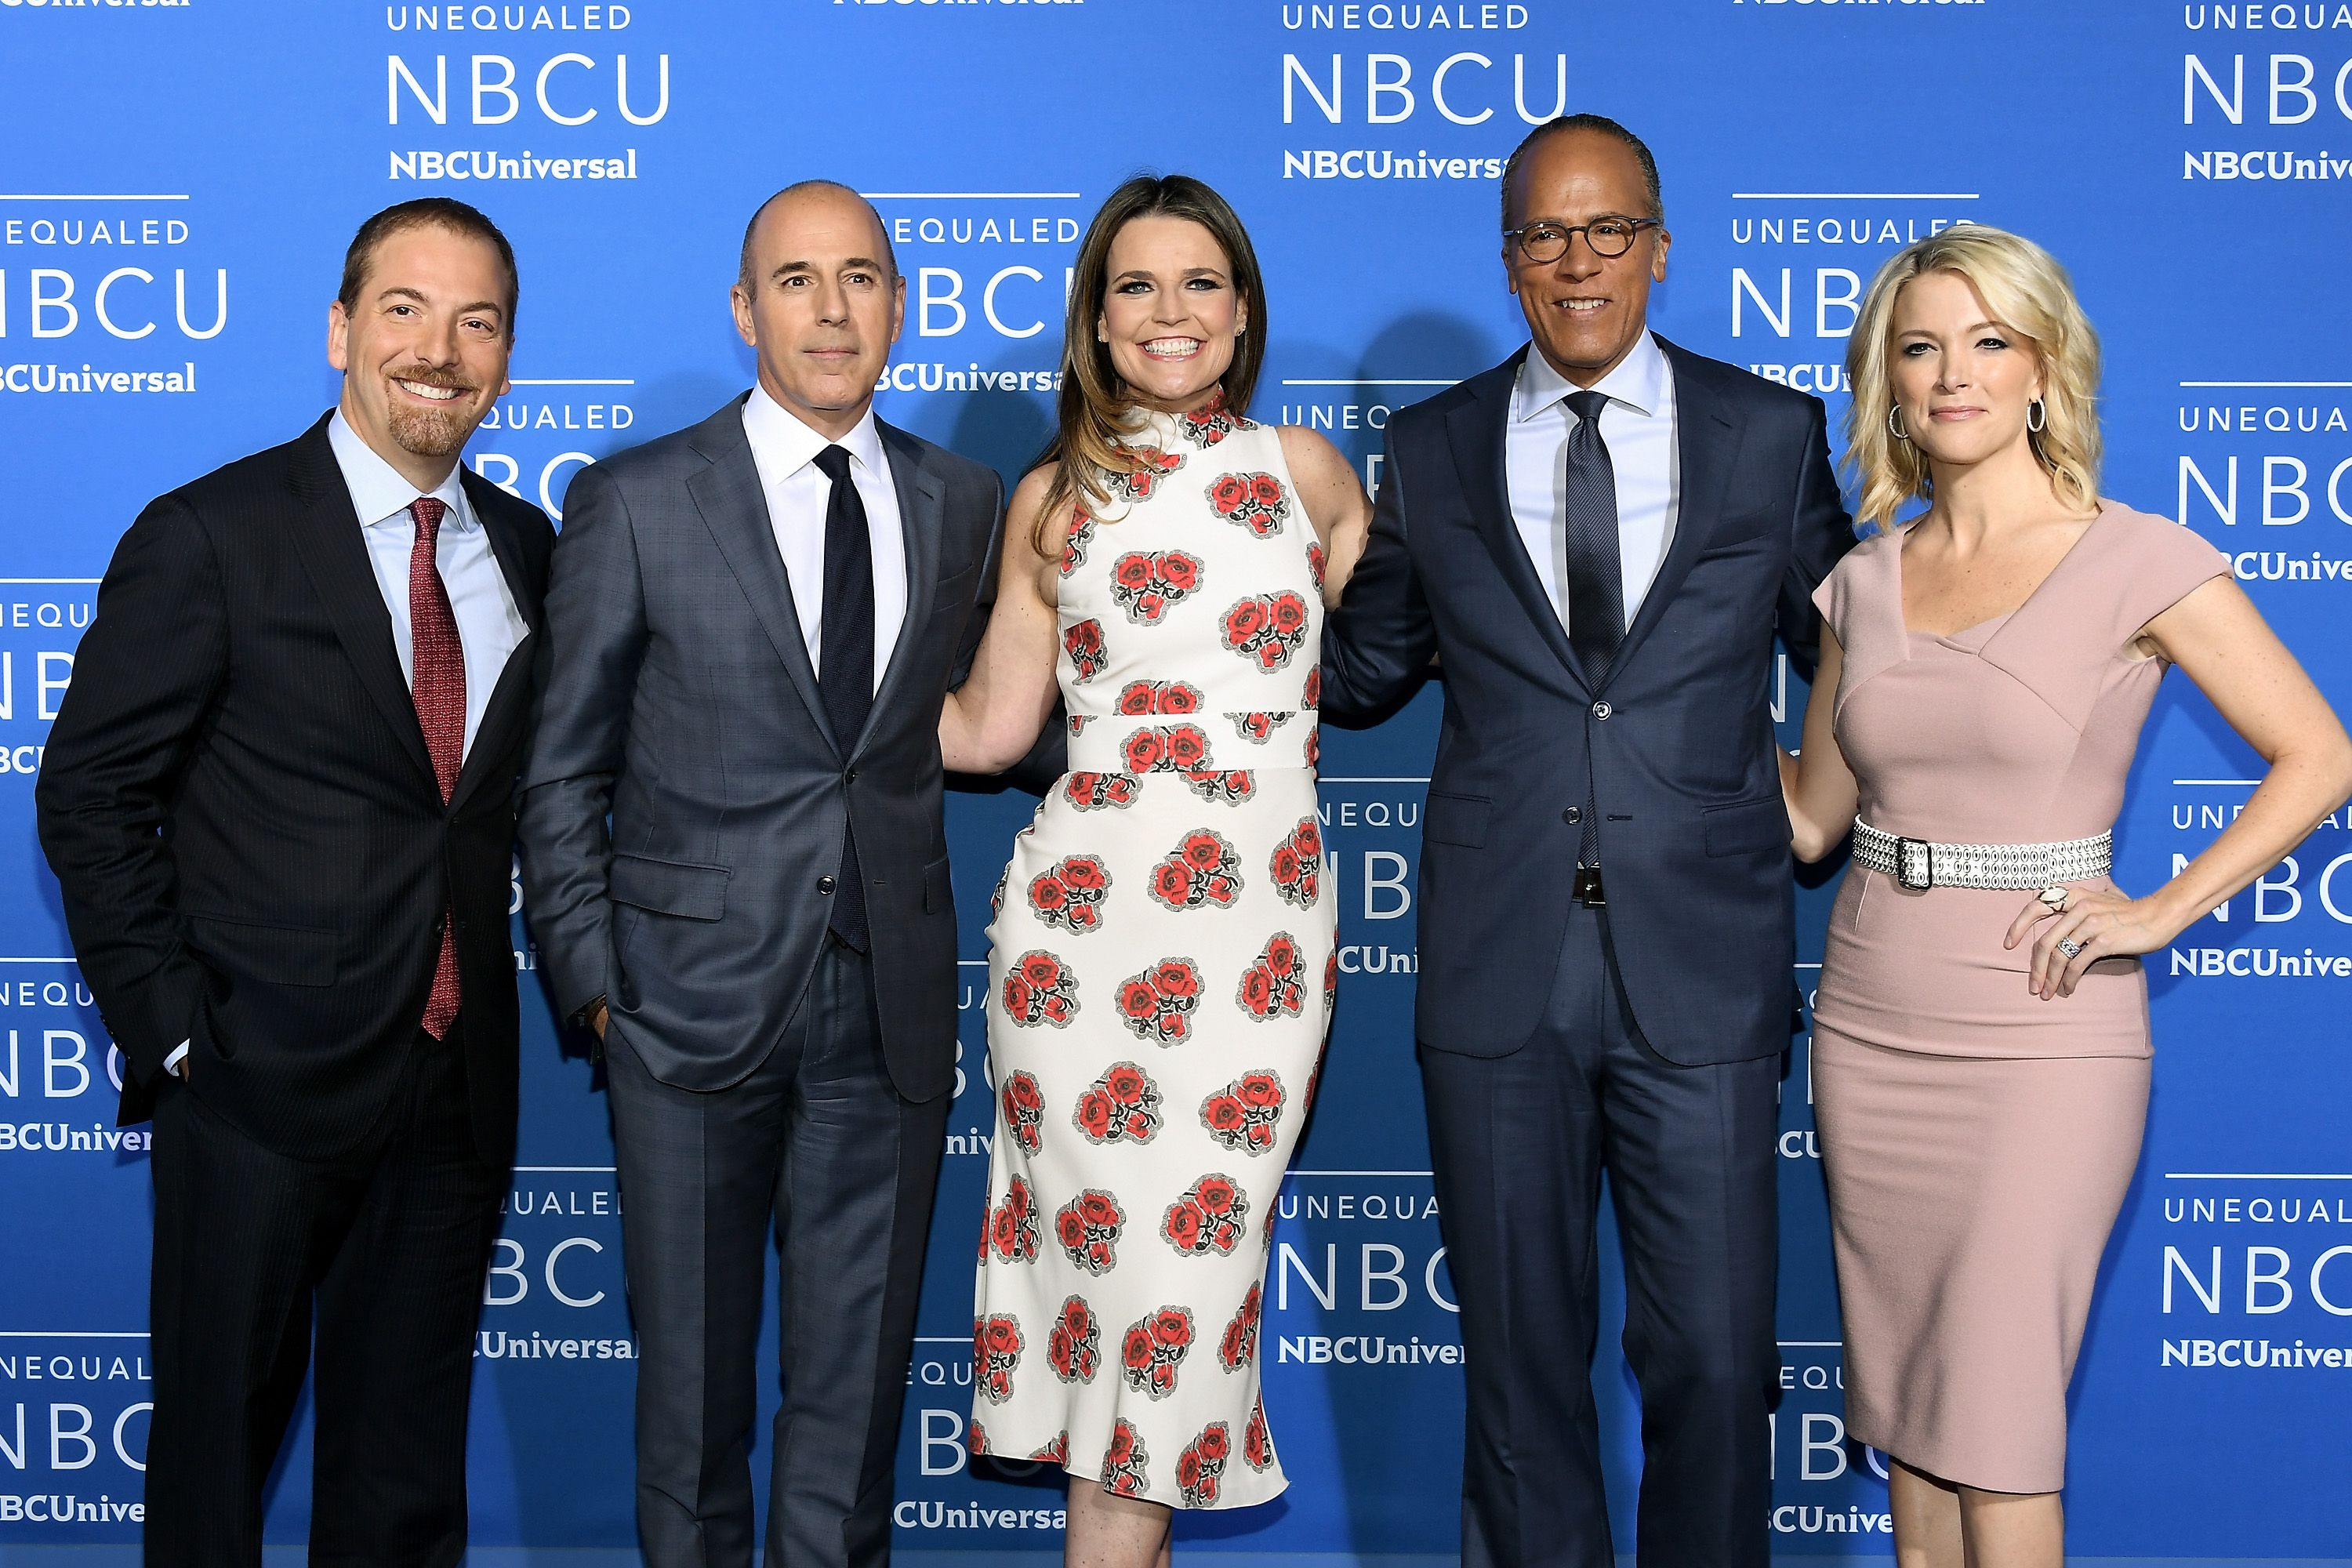 Chuck Todd, Matt Lauer, Savannah Guthrie, Lester Holt, and Megyn Kelly attend the 2017 NBCUniversal Upfront at Radio City Music Hall on May 15, 2017. | Photo: Getty Images.